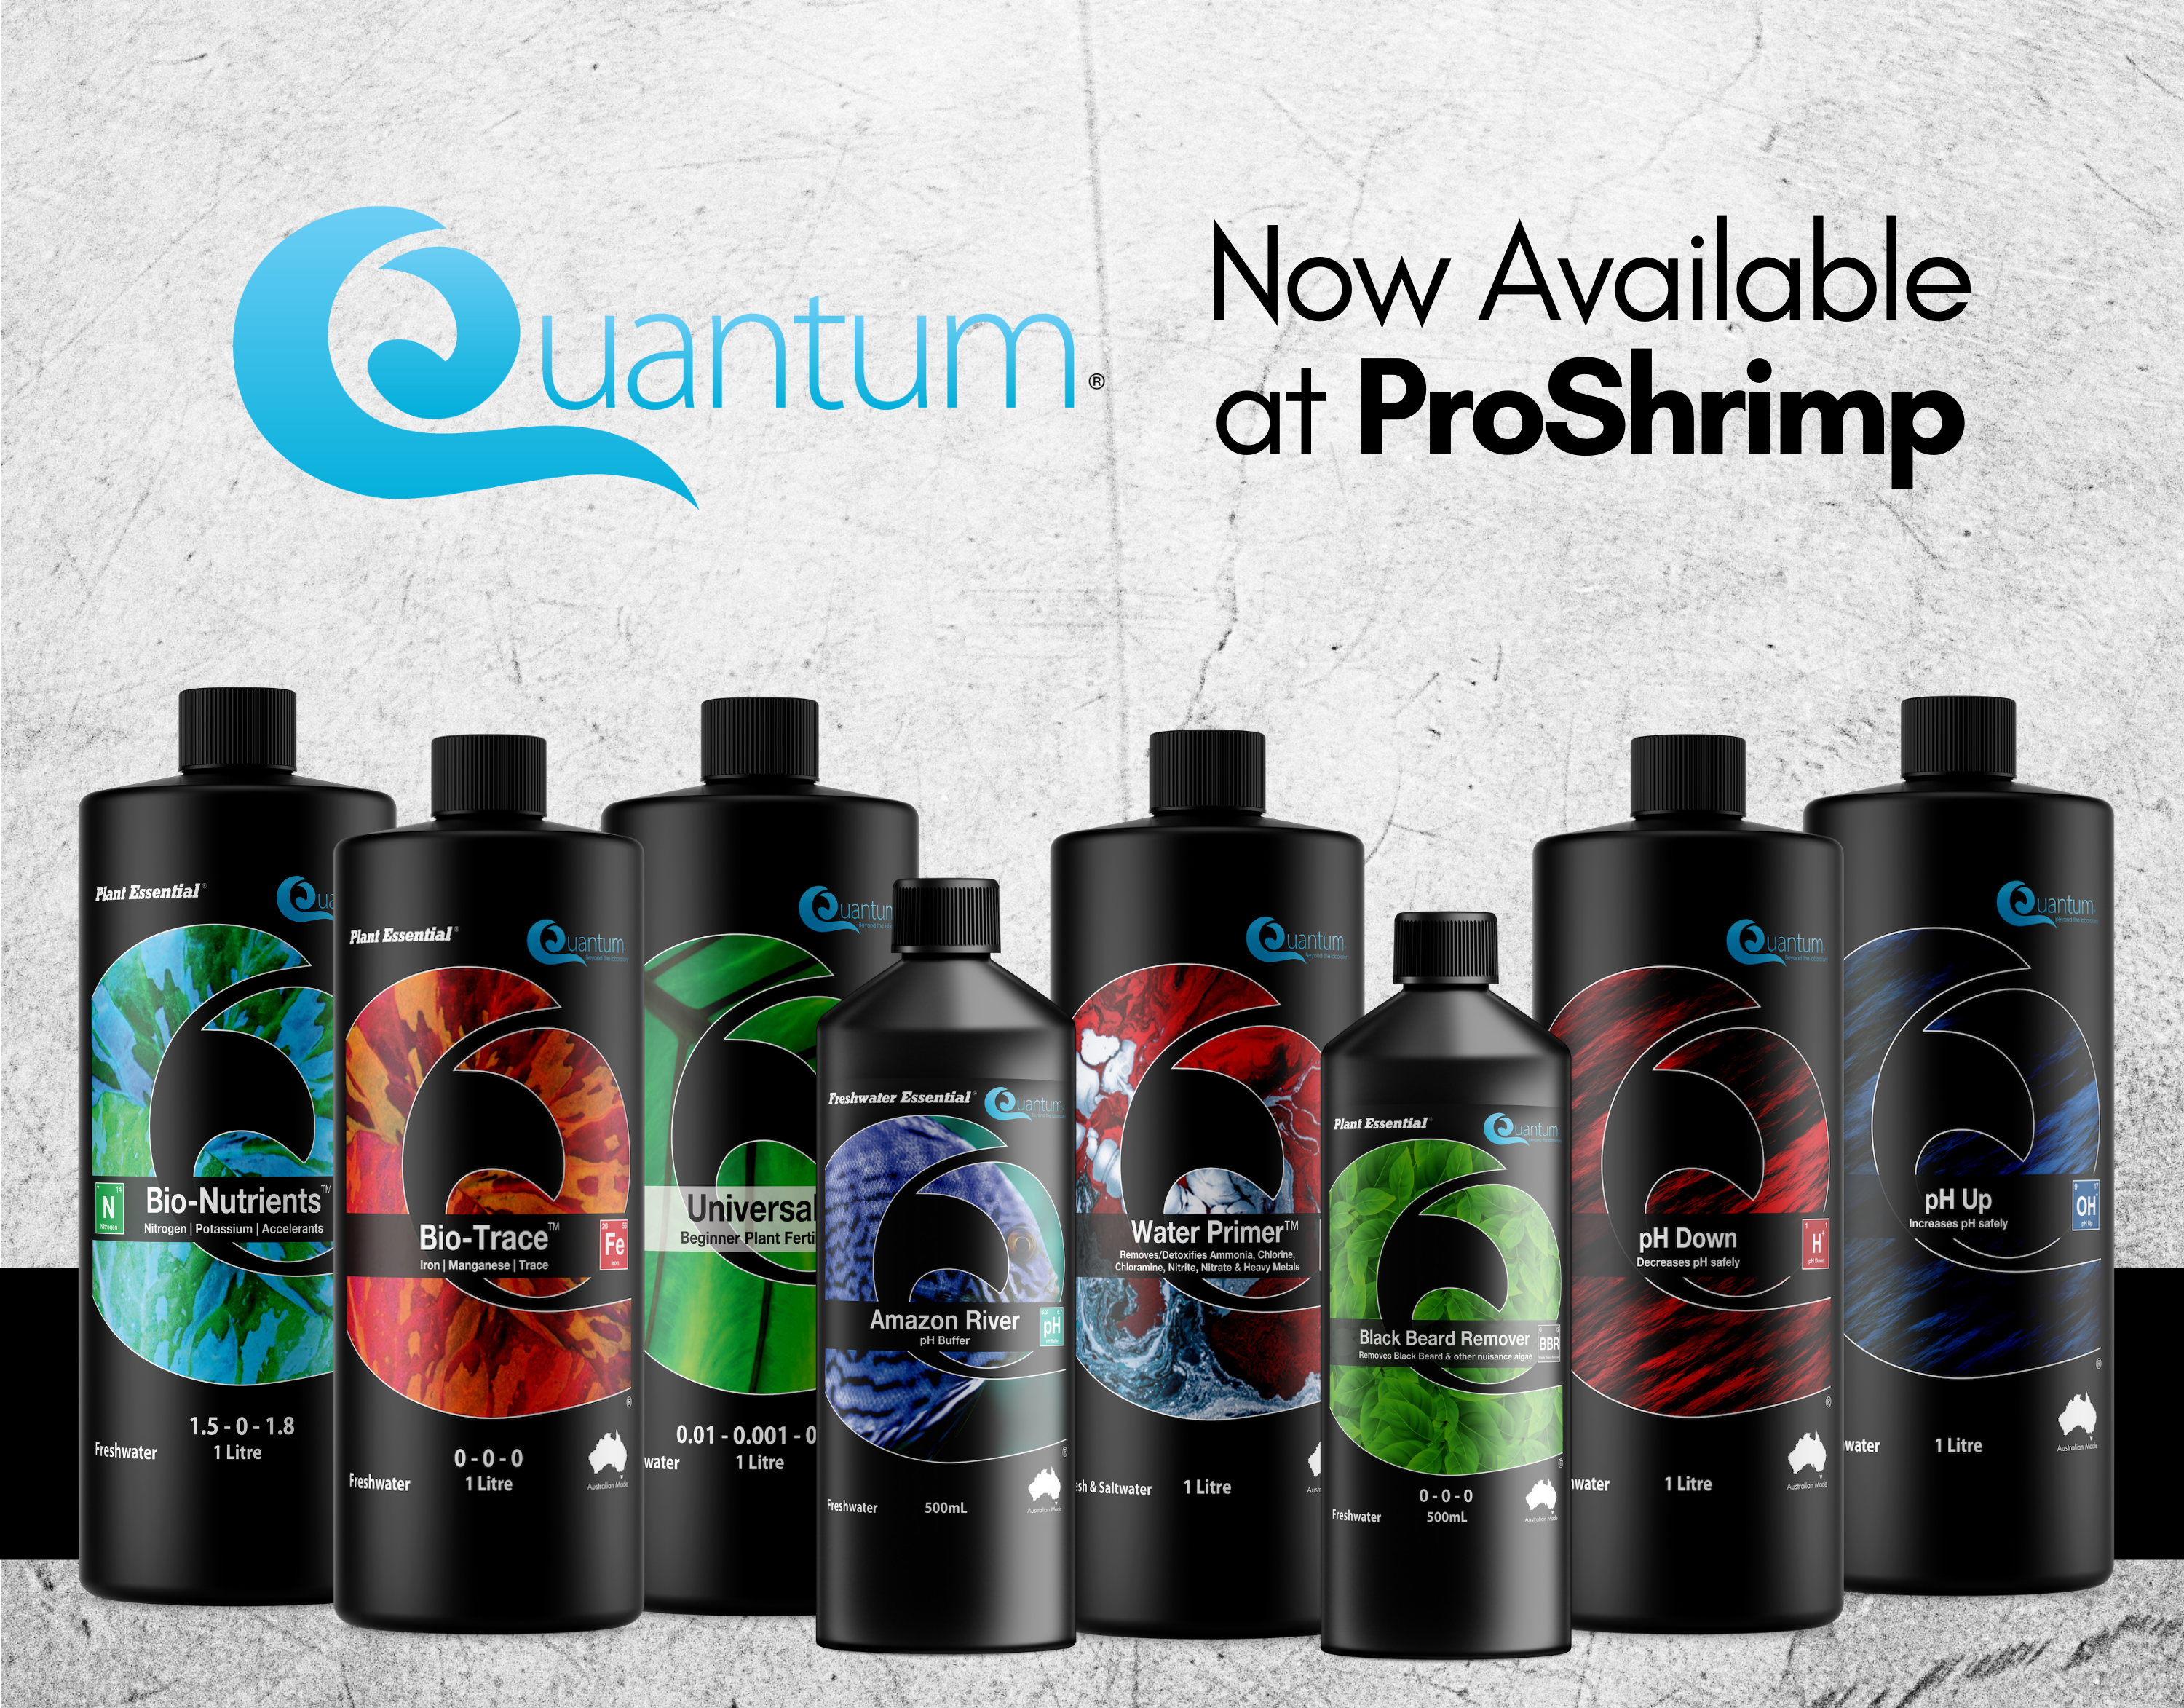 Quantum UK Products now available!